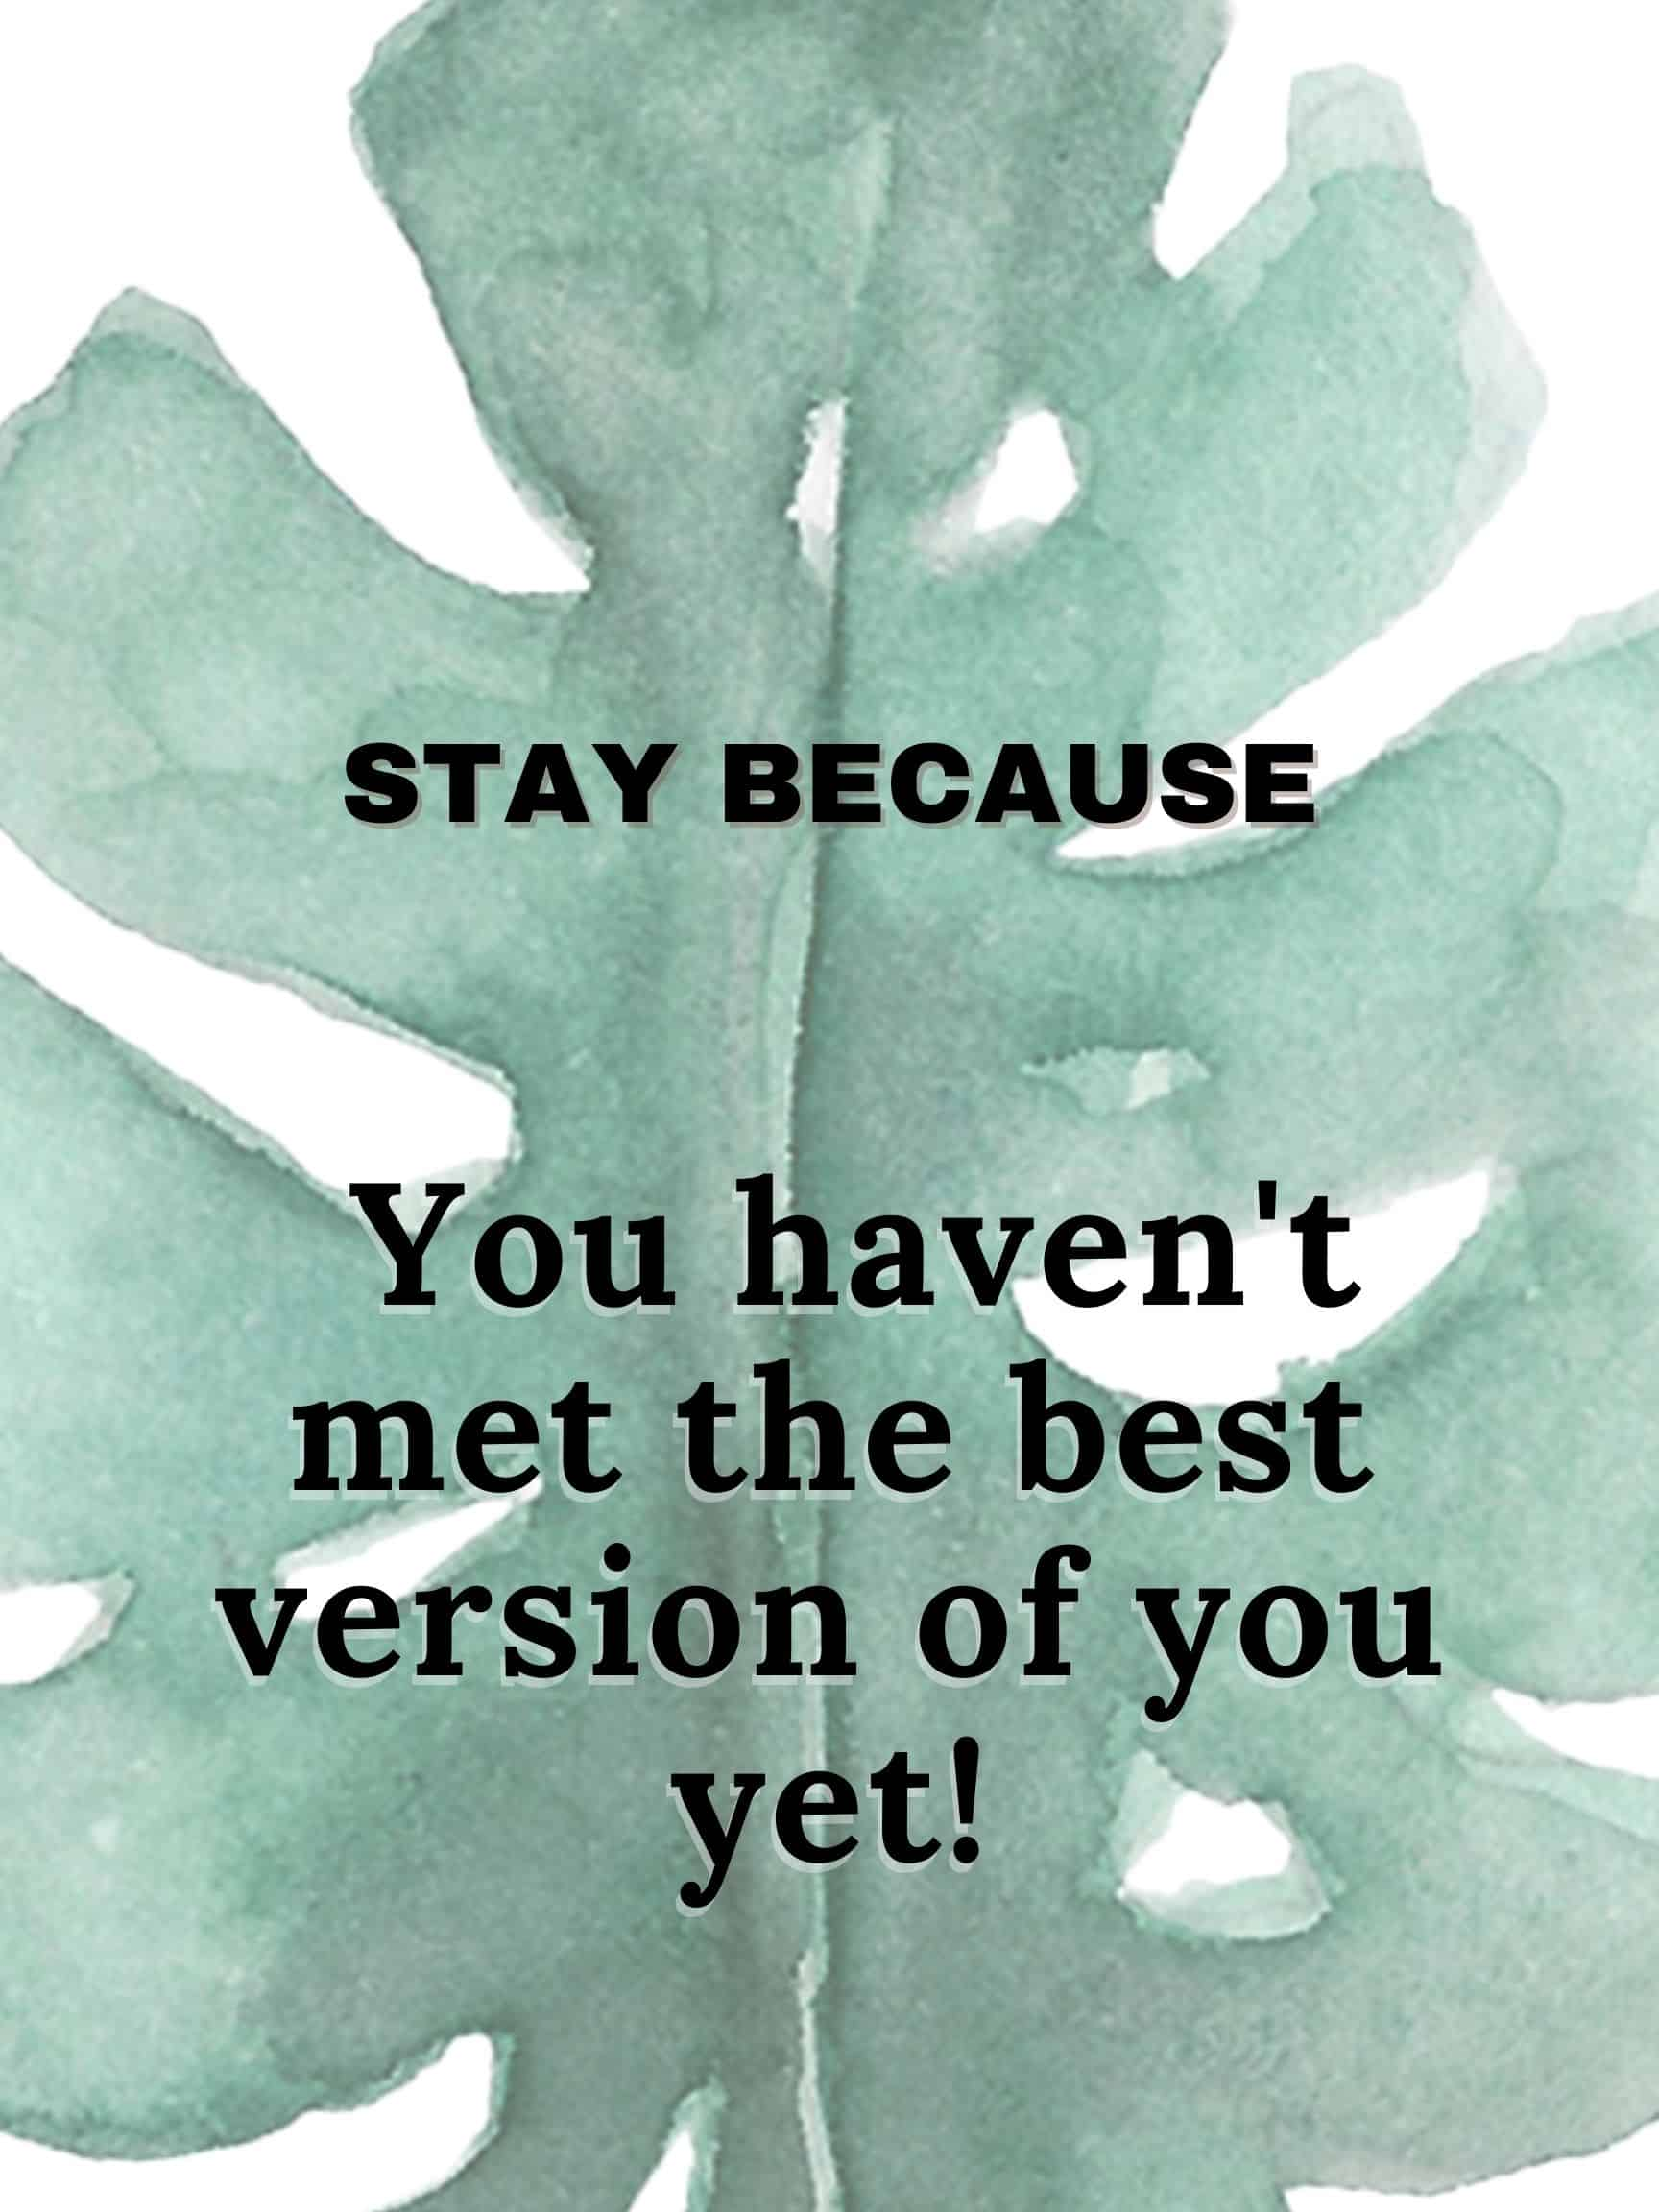 Stay because you haven't met the best version of you yet #StayBecause